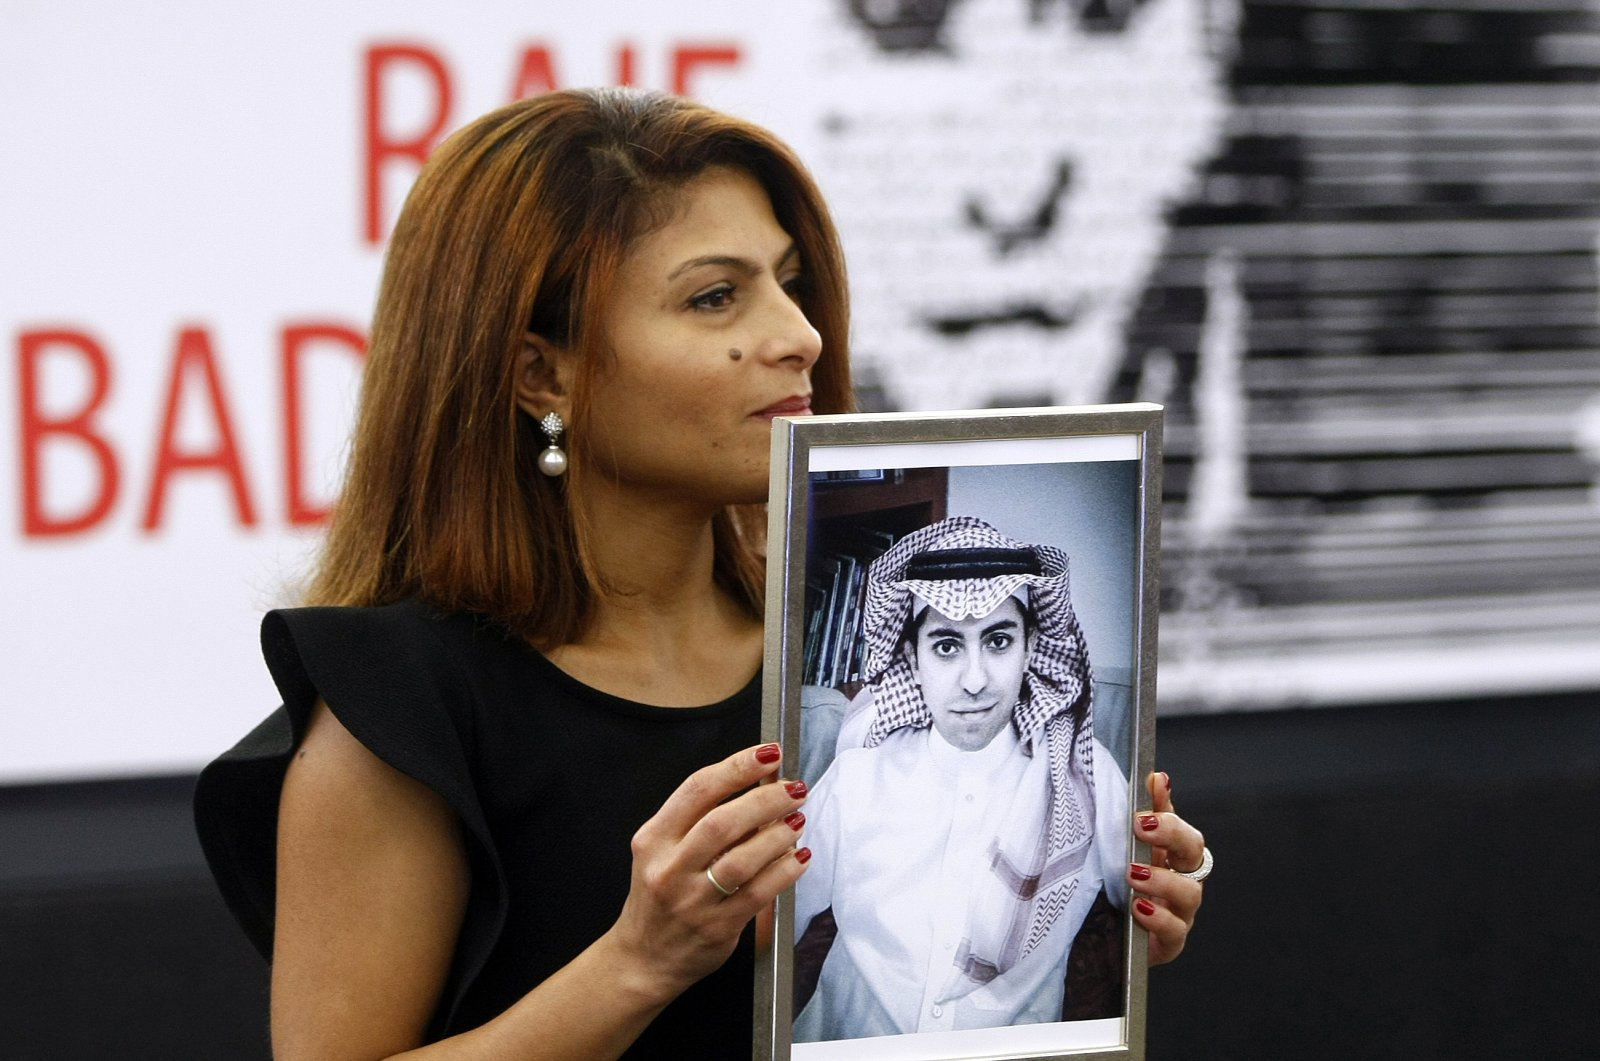 Ensaf Haidar, wife of the jailed Saudi Arabian blogger Raif Badawi, shows a portrait of her husband as he is awarded the Sakharov Prize, in Strasbourg, France, Dec. 16, 2015. (AP Photo)